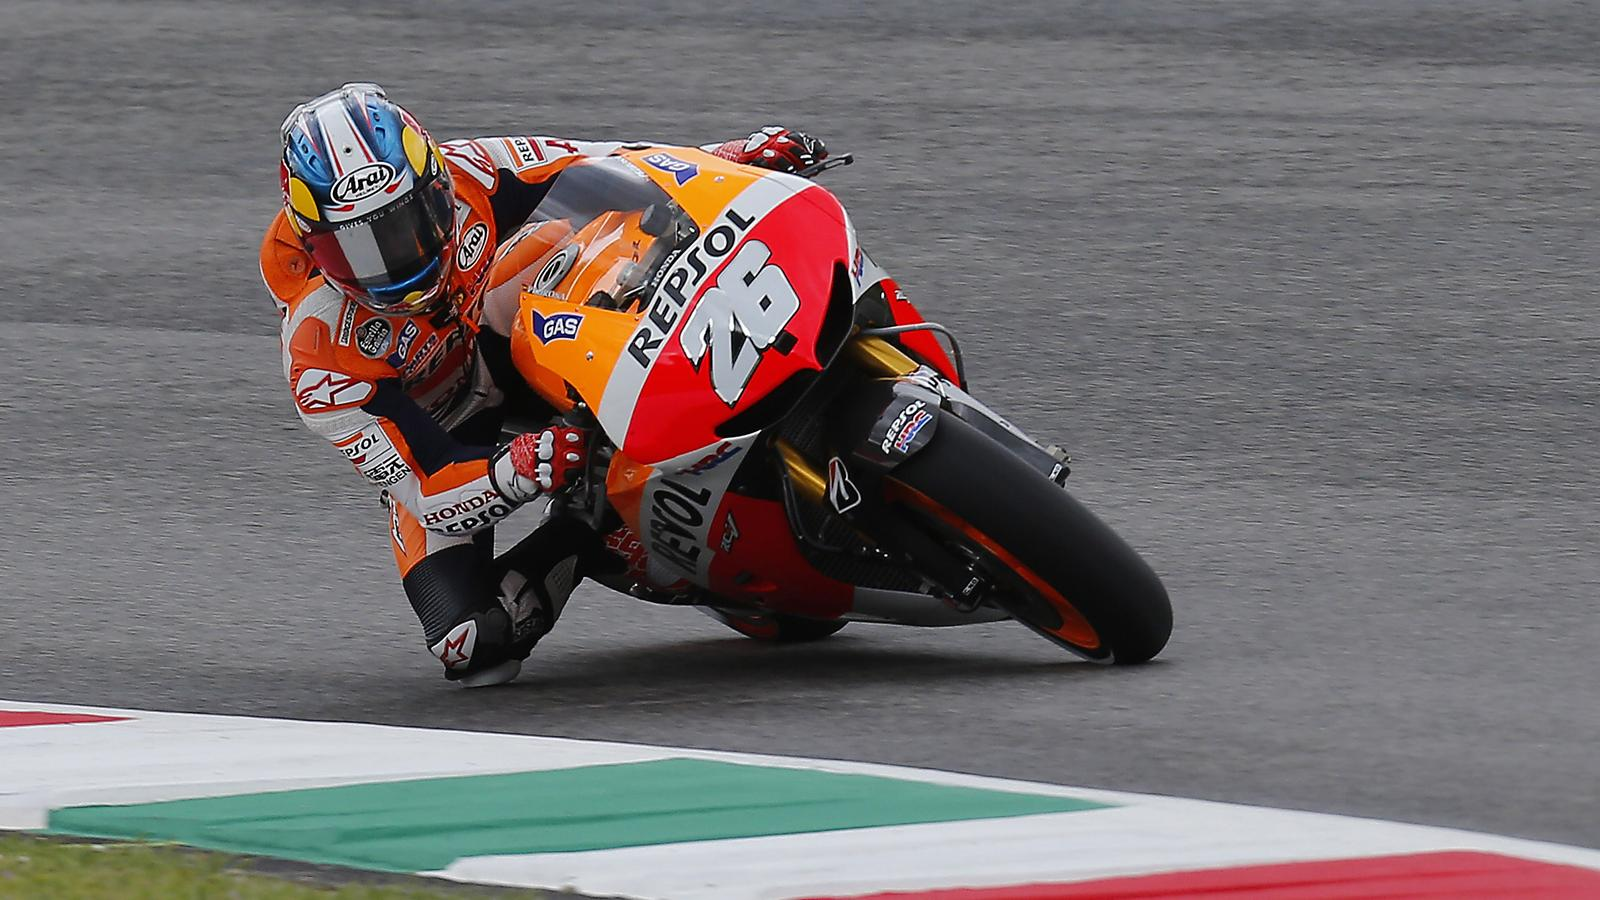 grand prix d 39 italie 2013 pedrosa honda en pole position en motogp grand prix d 39 italie 2013. Black Bedroom Furniture Sets. Home Design Ideas